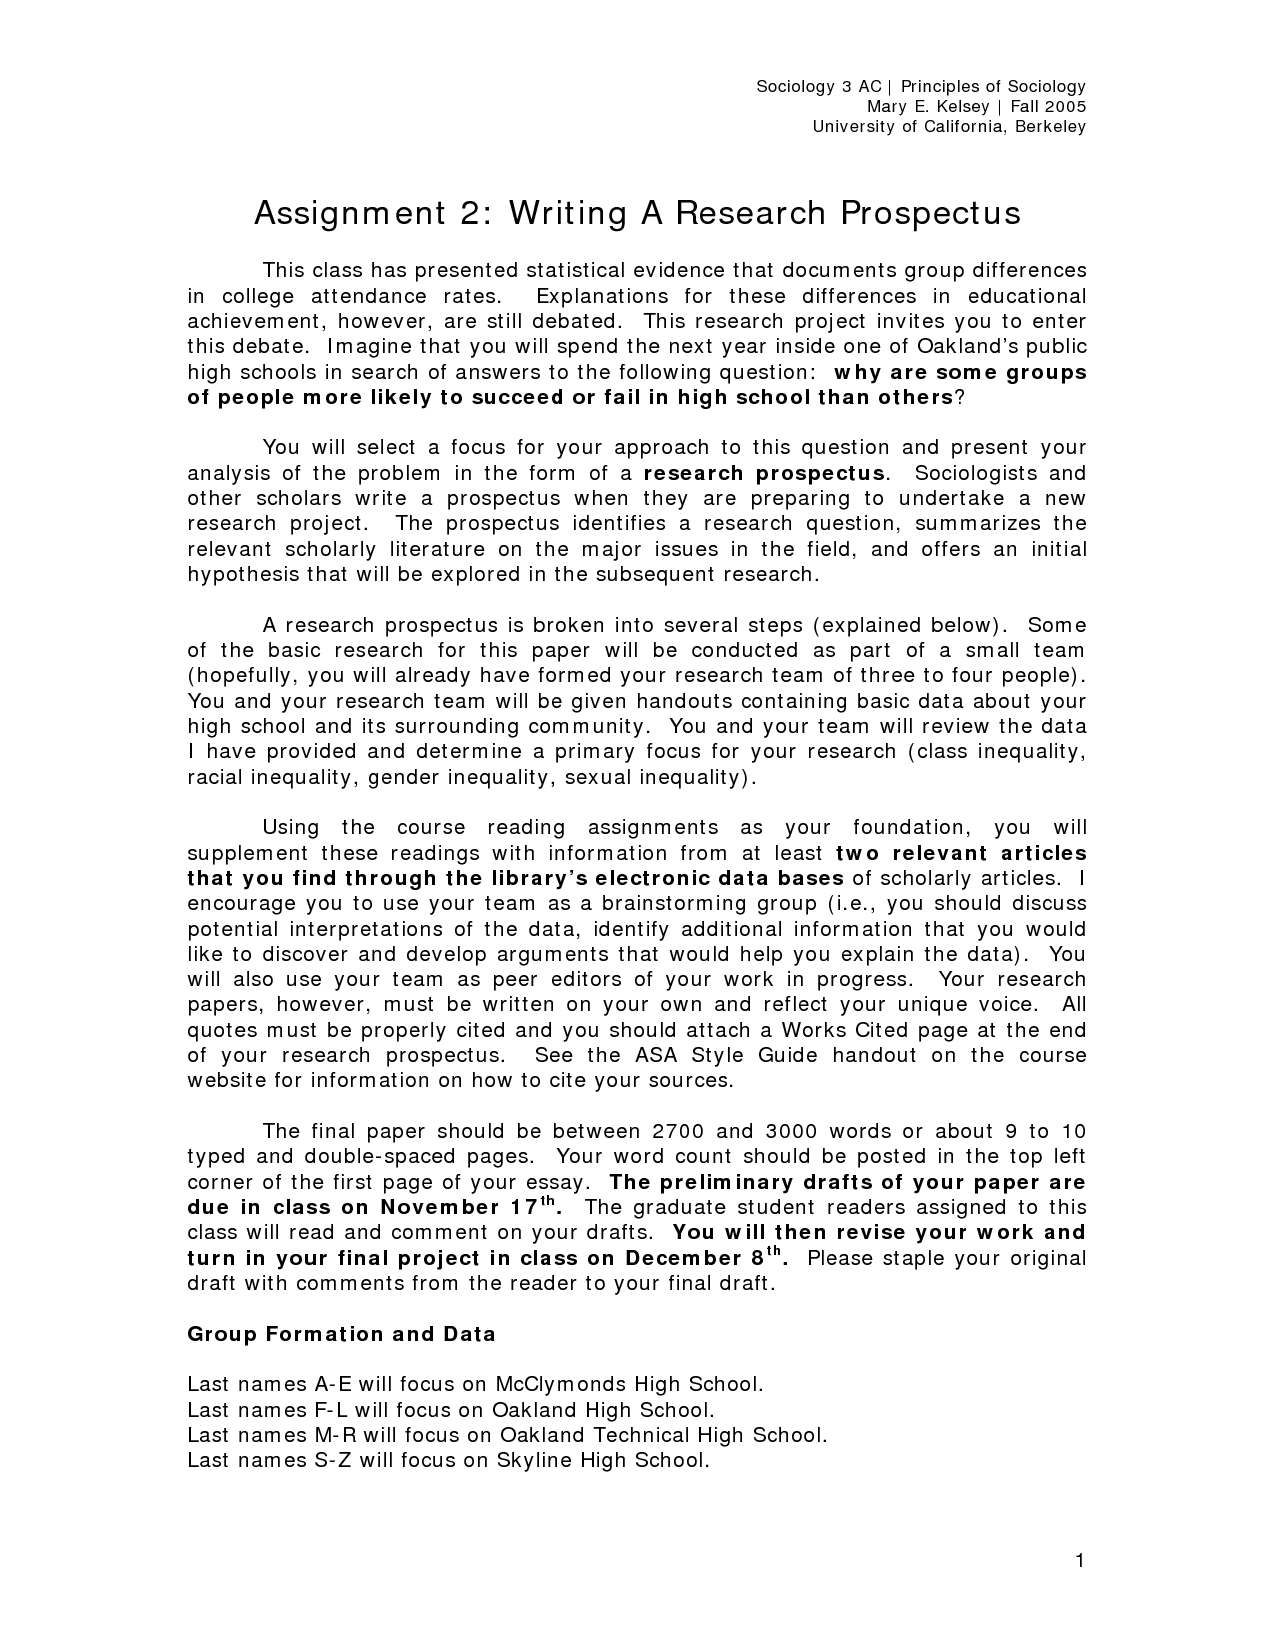 thesis research prospectus Thesis proposals all students should give serious consideration to electing to write a thesis a thesis involves original research and is a proven method for.